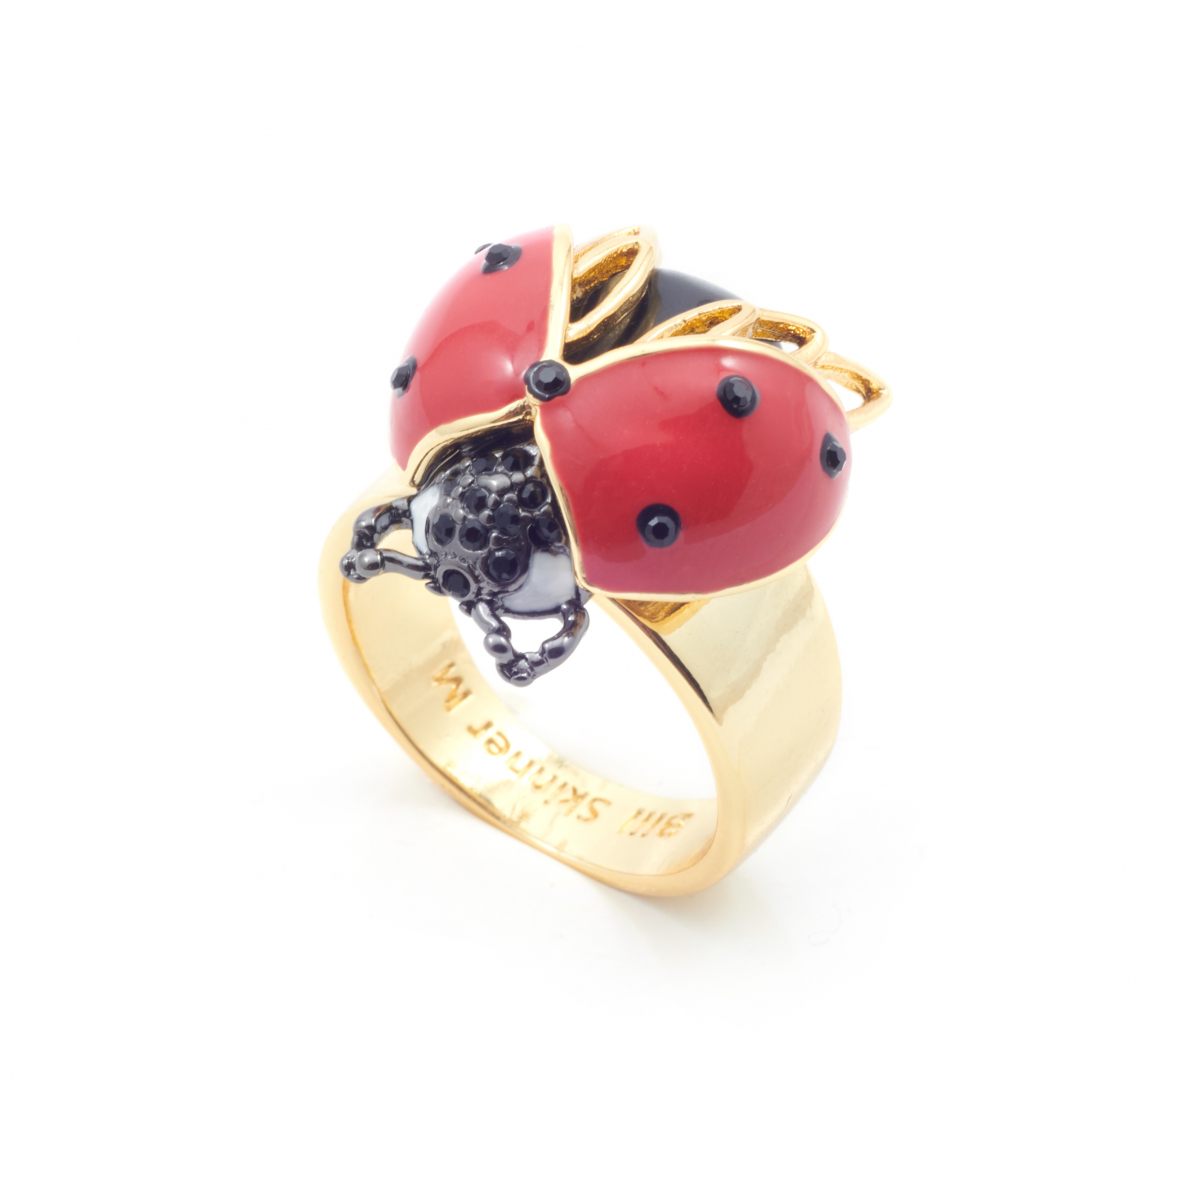 Bejewelled Ladybird Ring